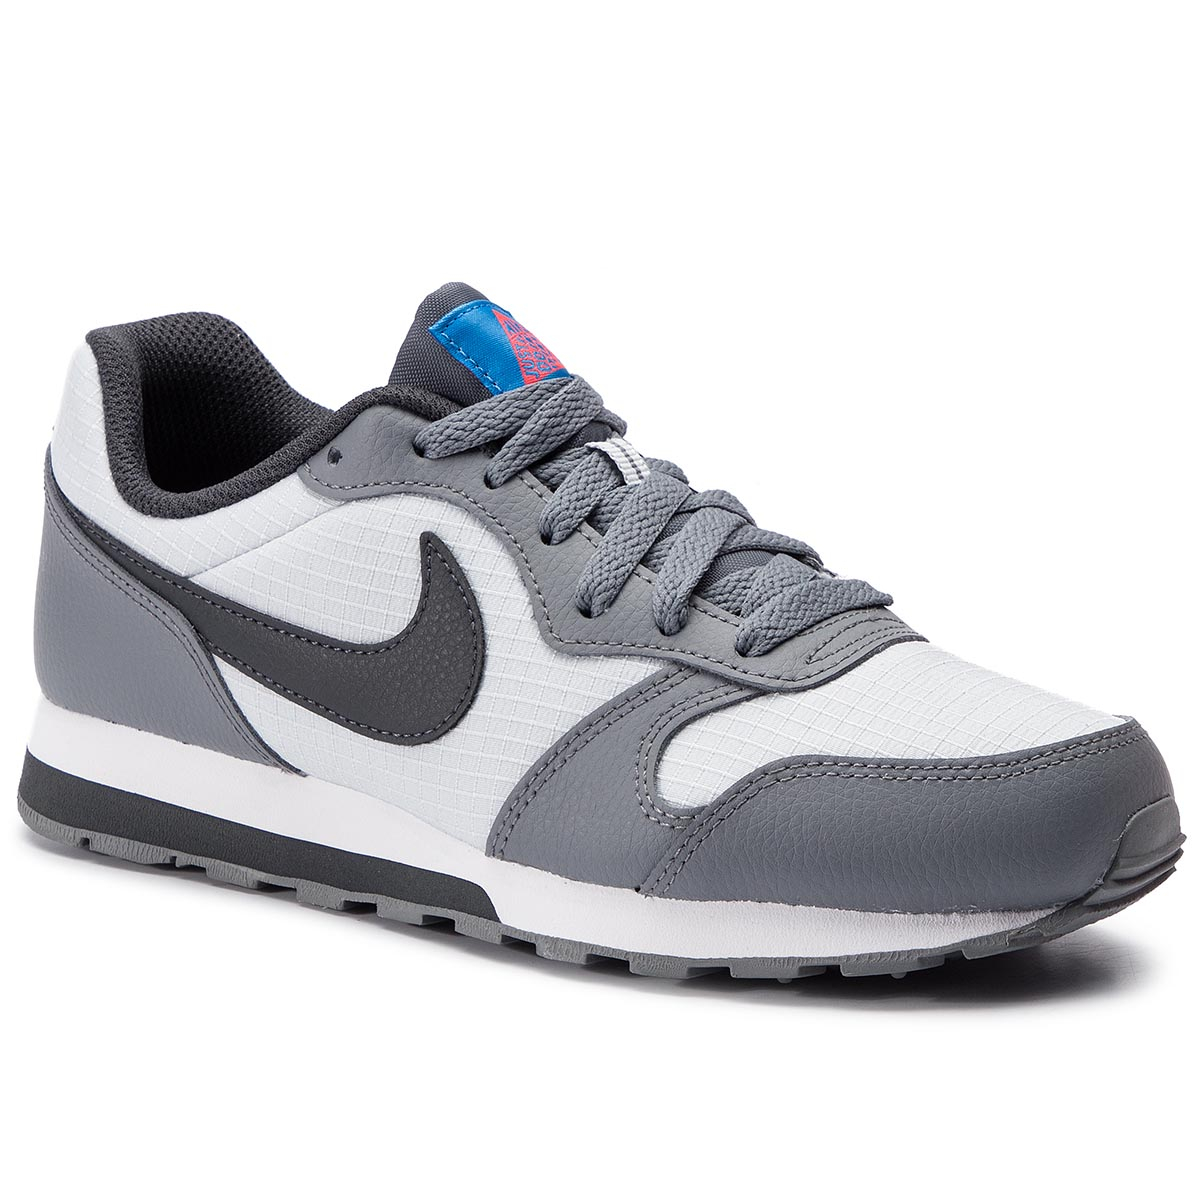 Buty NIKE – Md Runner 2 (GS) 807316 015 Pure Platinum/Anthracite